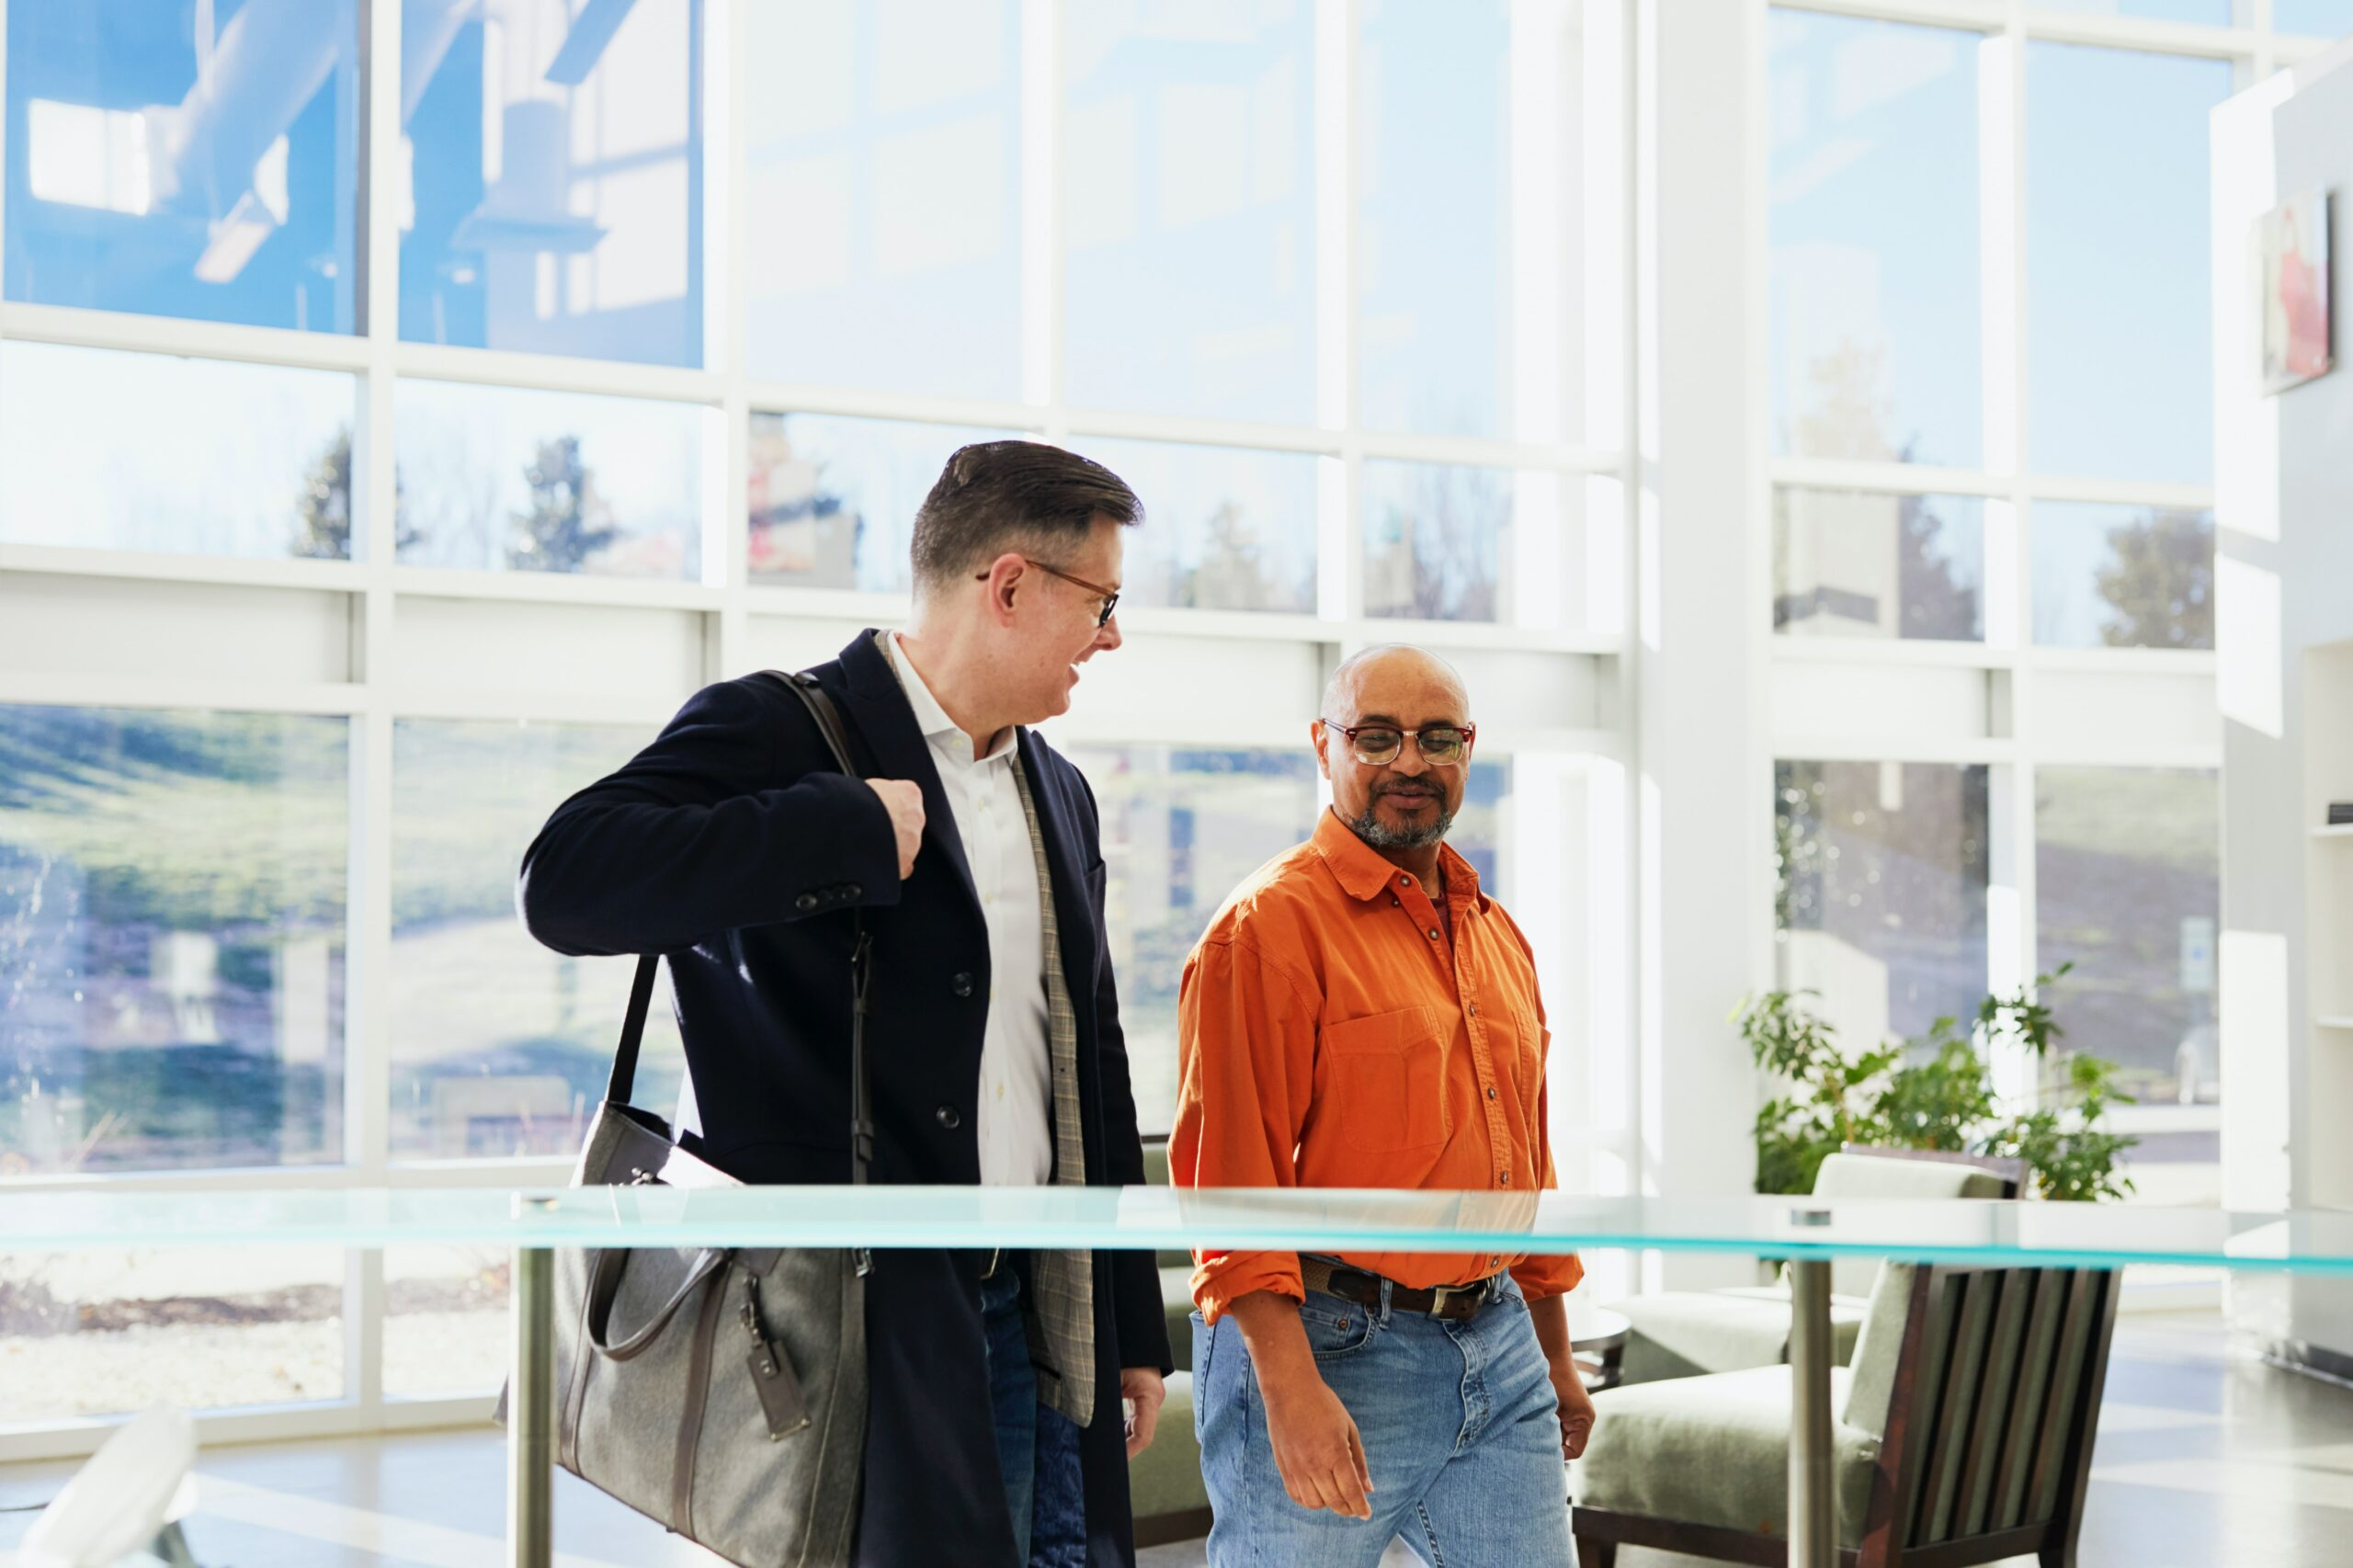 man in navy suit walking and talking to man in orange polo